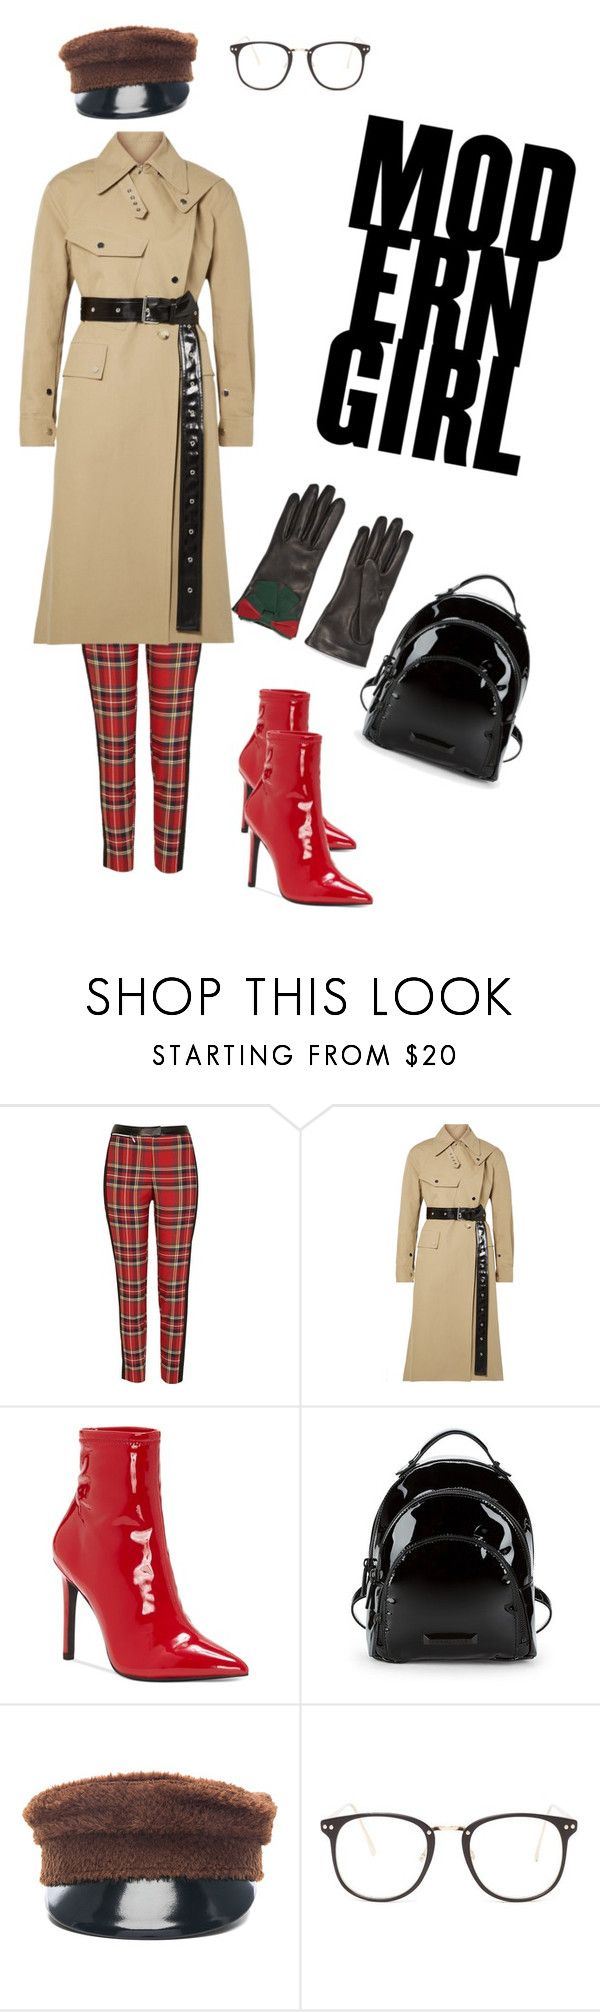 """""""Modern chick"""" by lamara-chandler on Polyvore featuring Helmut Lang, Jessica Simpson, Kendall + Kylie, Ruslan Baginskiy, Nasty Gal, Gucci and modern"""